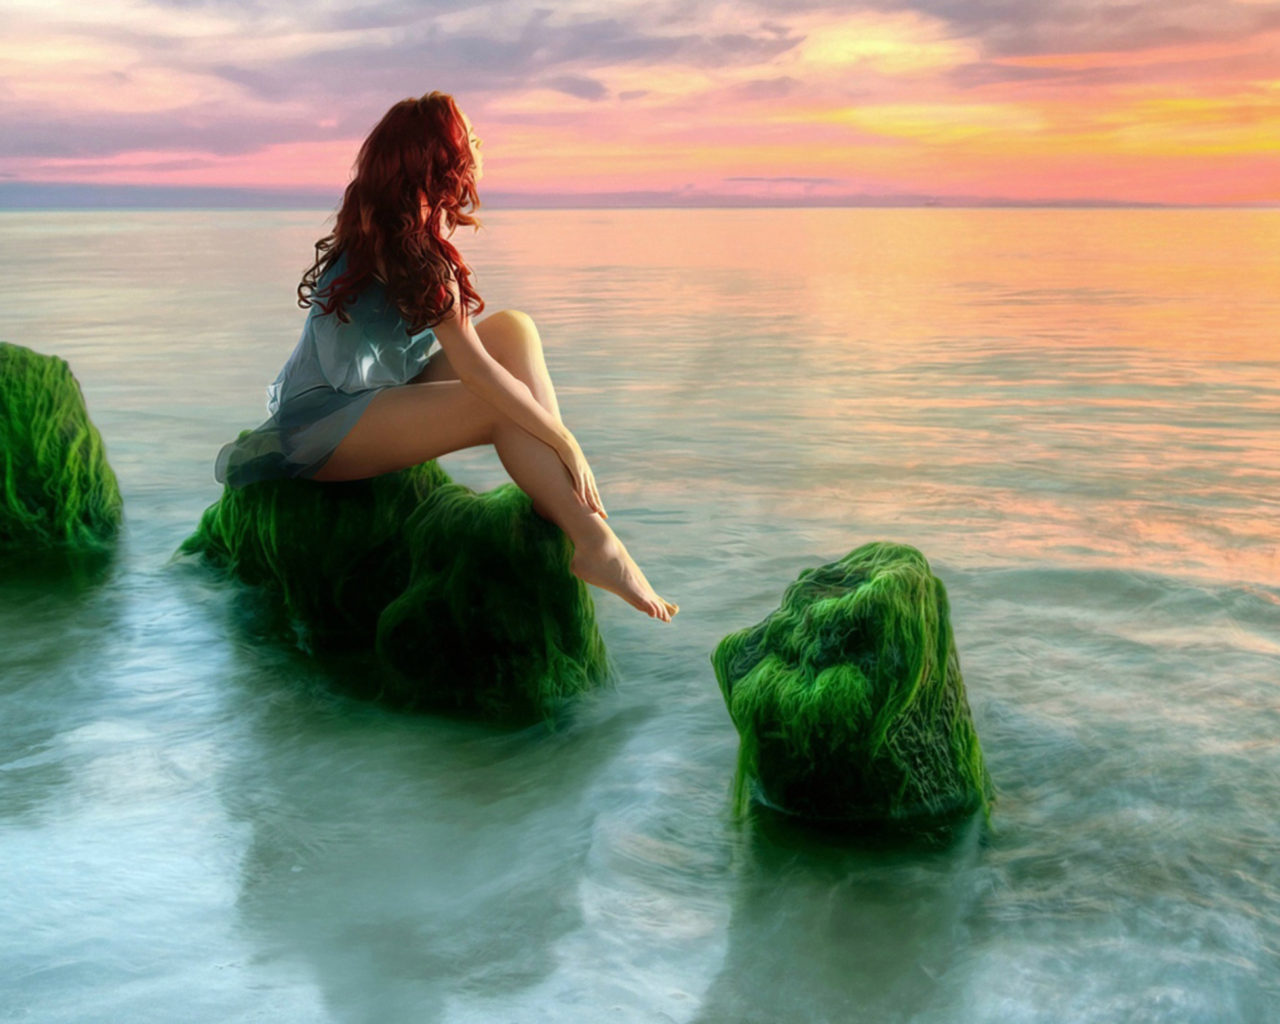 Live Girl Wallpaper Android Beauty Girl Sea Sunset Relax Desktop Hd Wallpaper